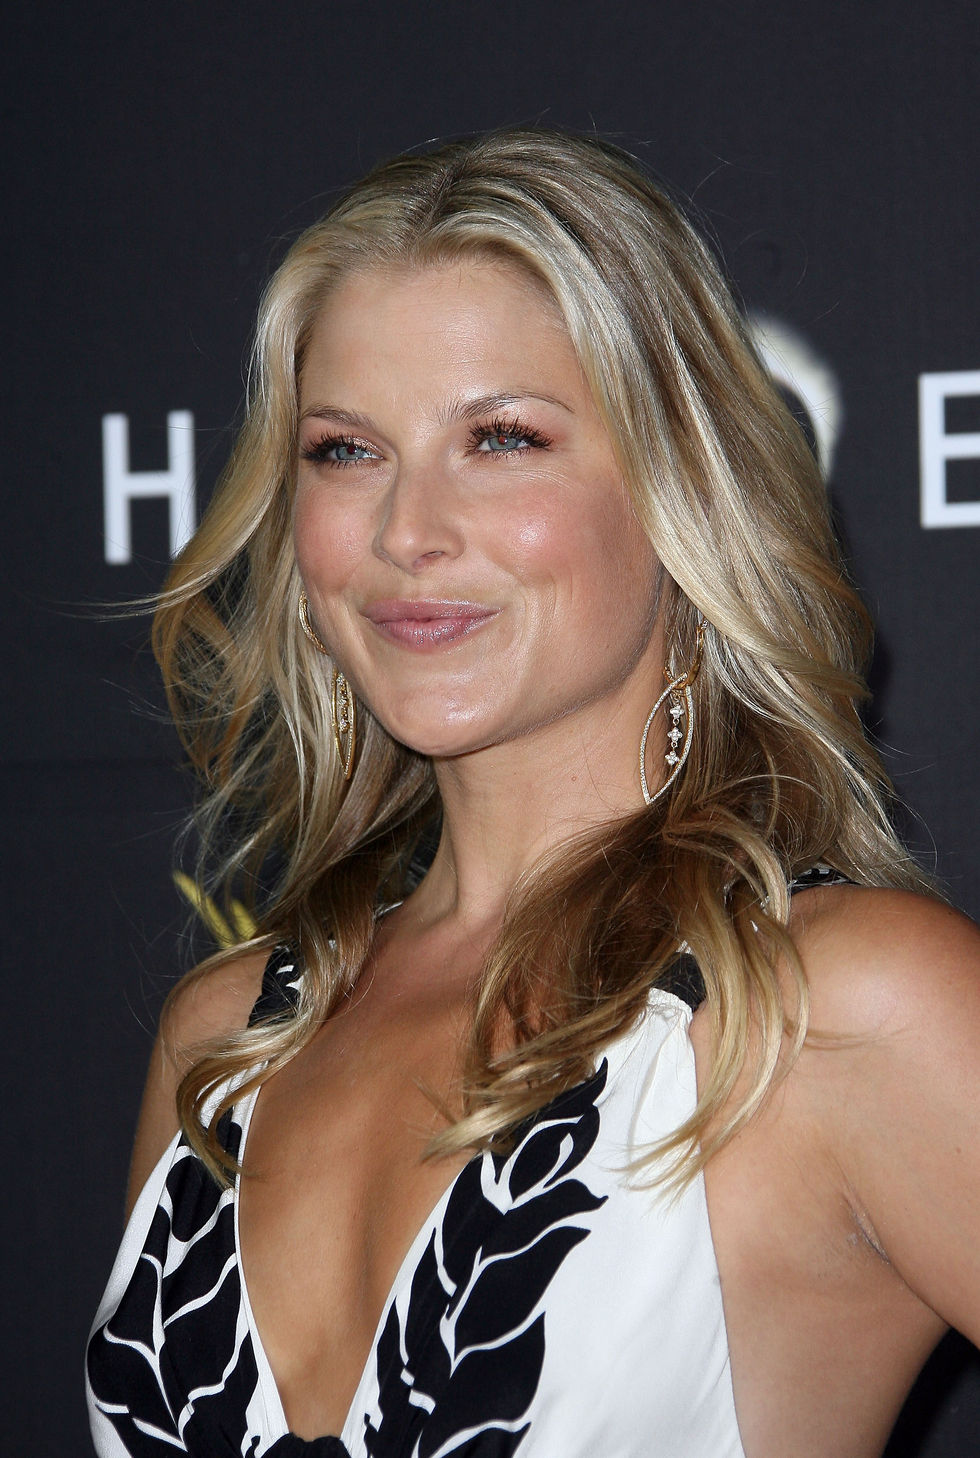 ali-larter-heroes-countdown-to-the-premiere-party-in-los-angeles-01